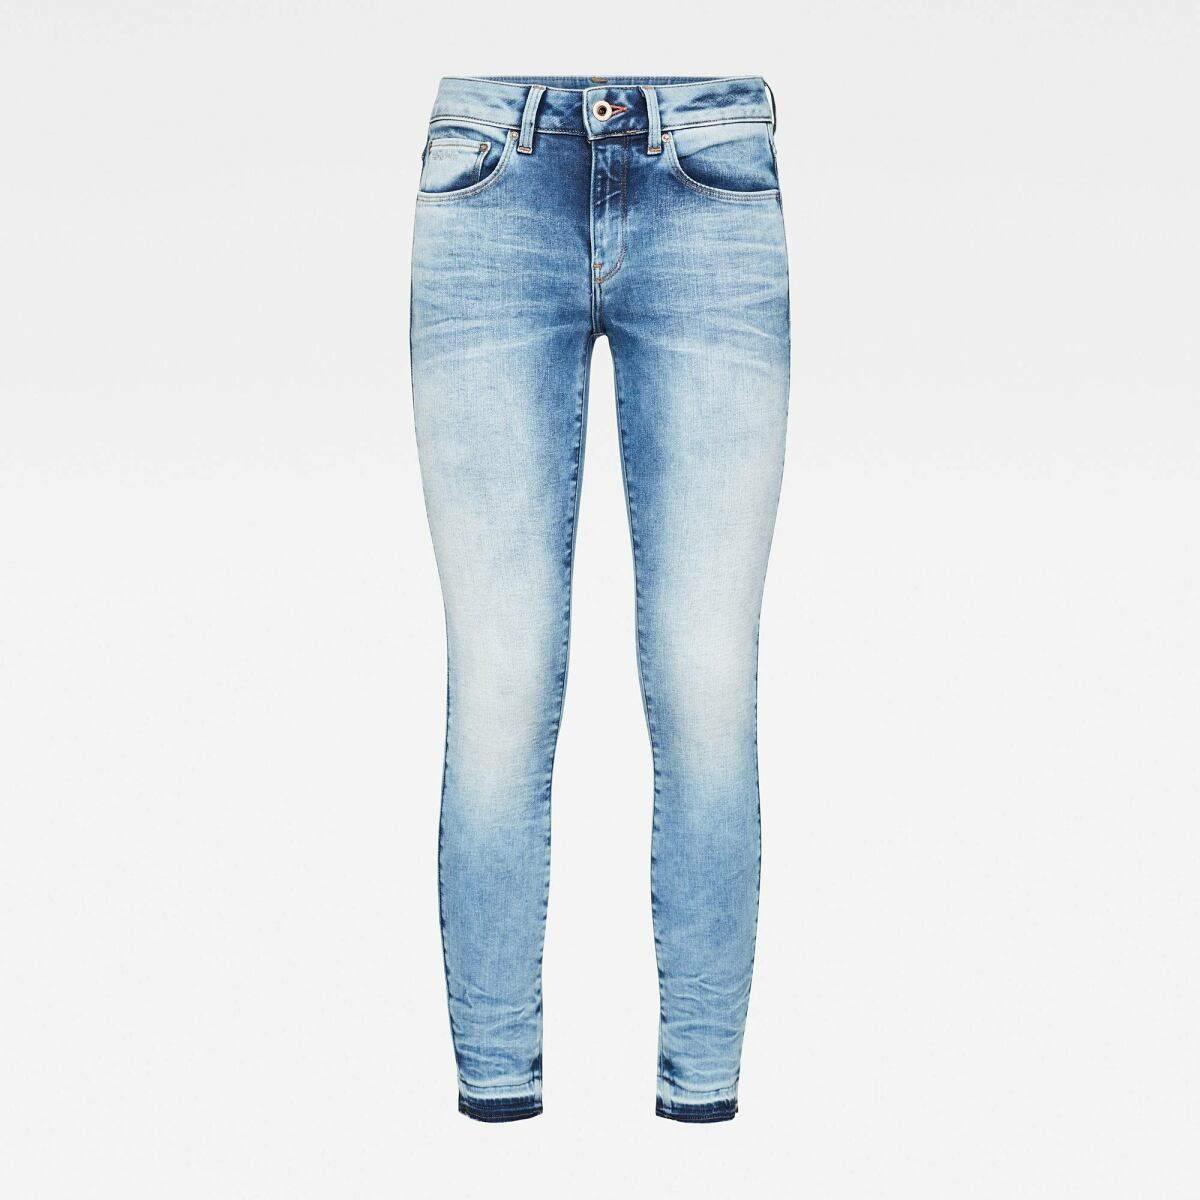 Light blue Woman Jeans 3301 Mid Skinny Ripped Edge Ankle Jeans G-Star WOMEN